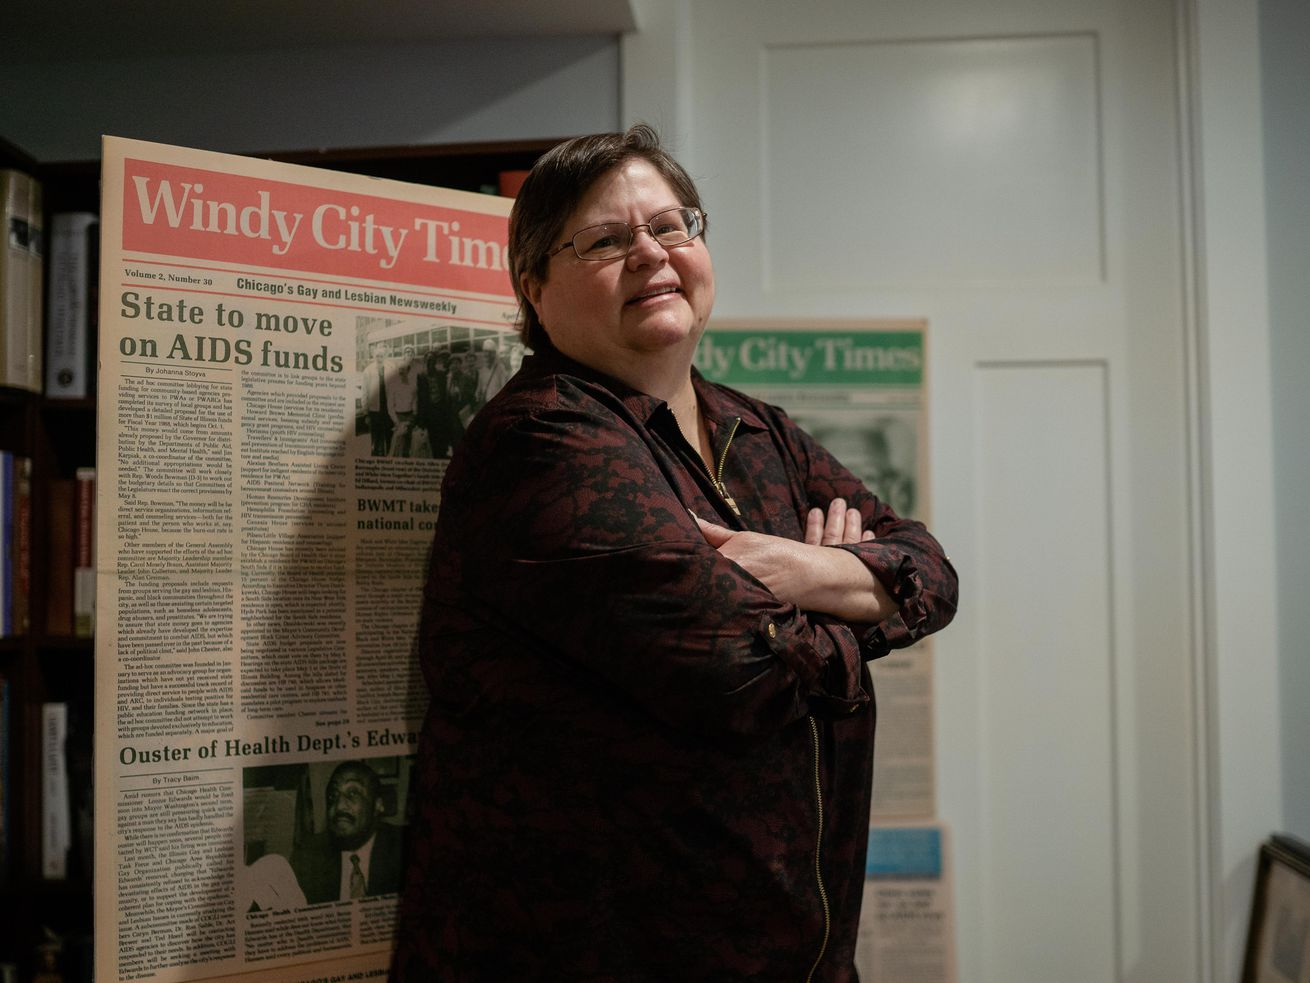 Documenting LGBTQ history: Windy City Times an 'invaluable resource' for Chicago